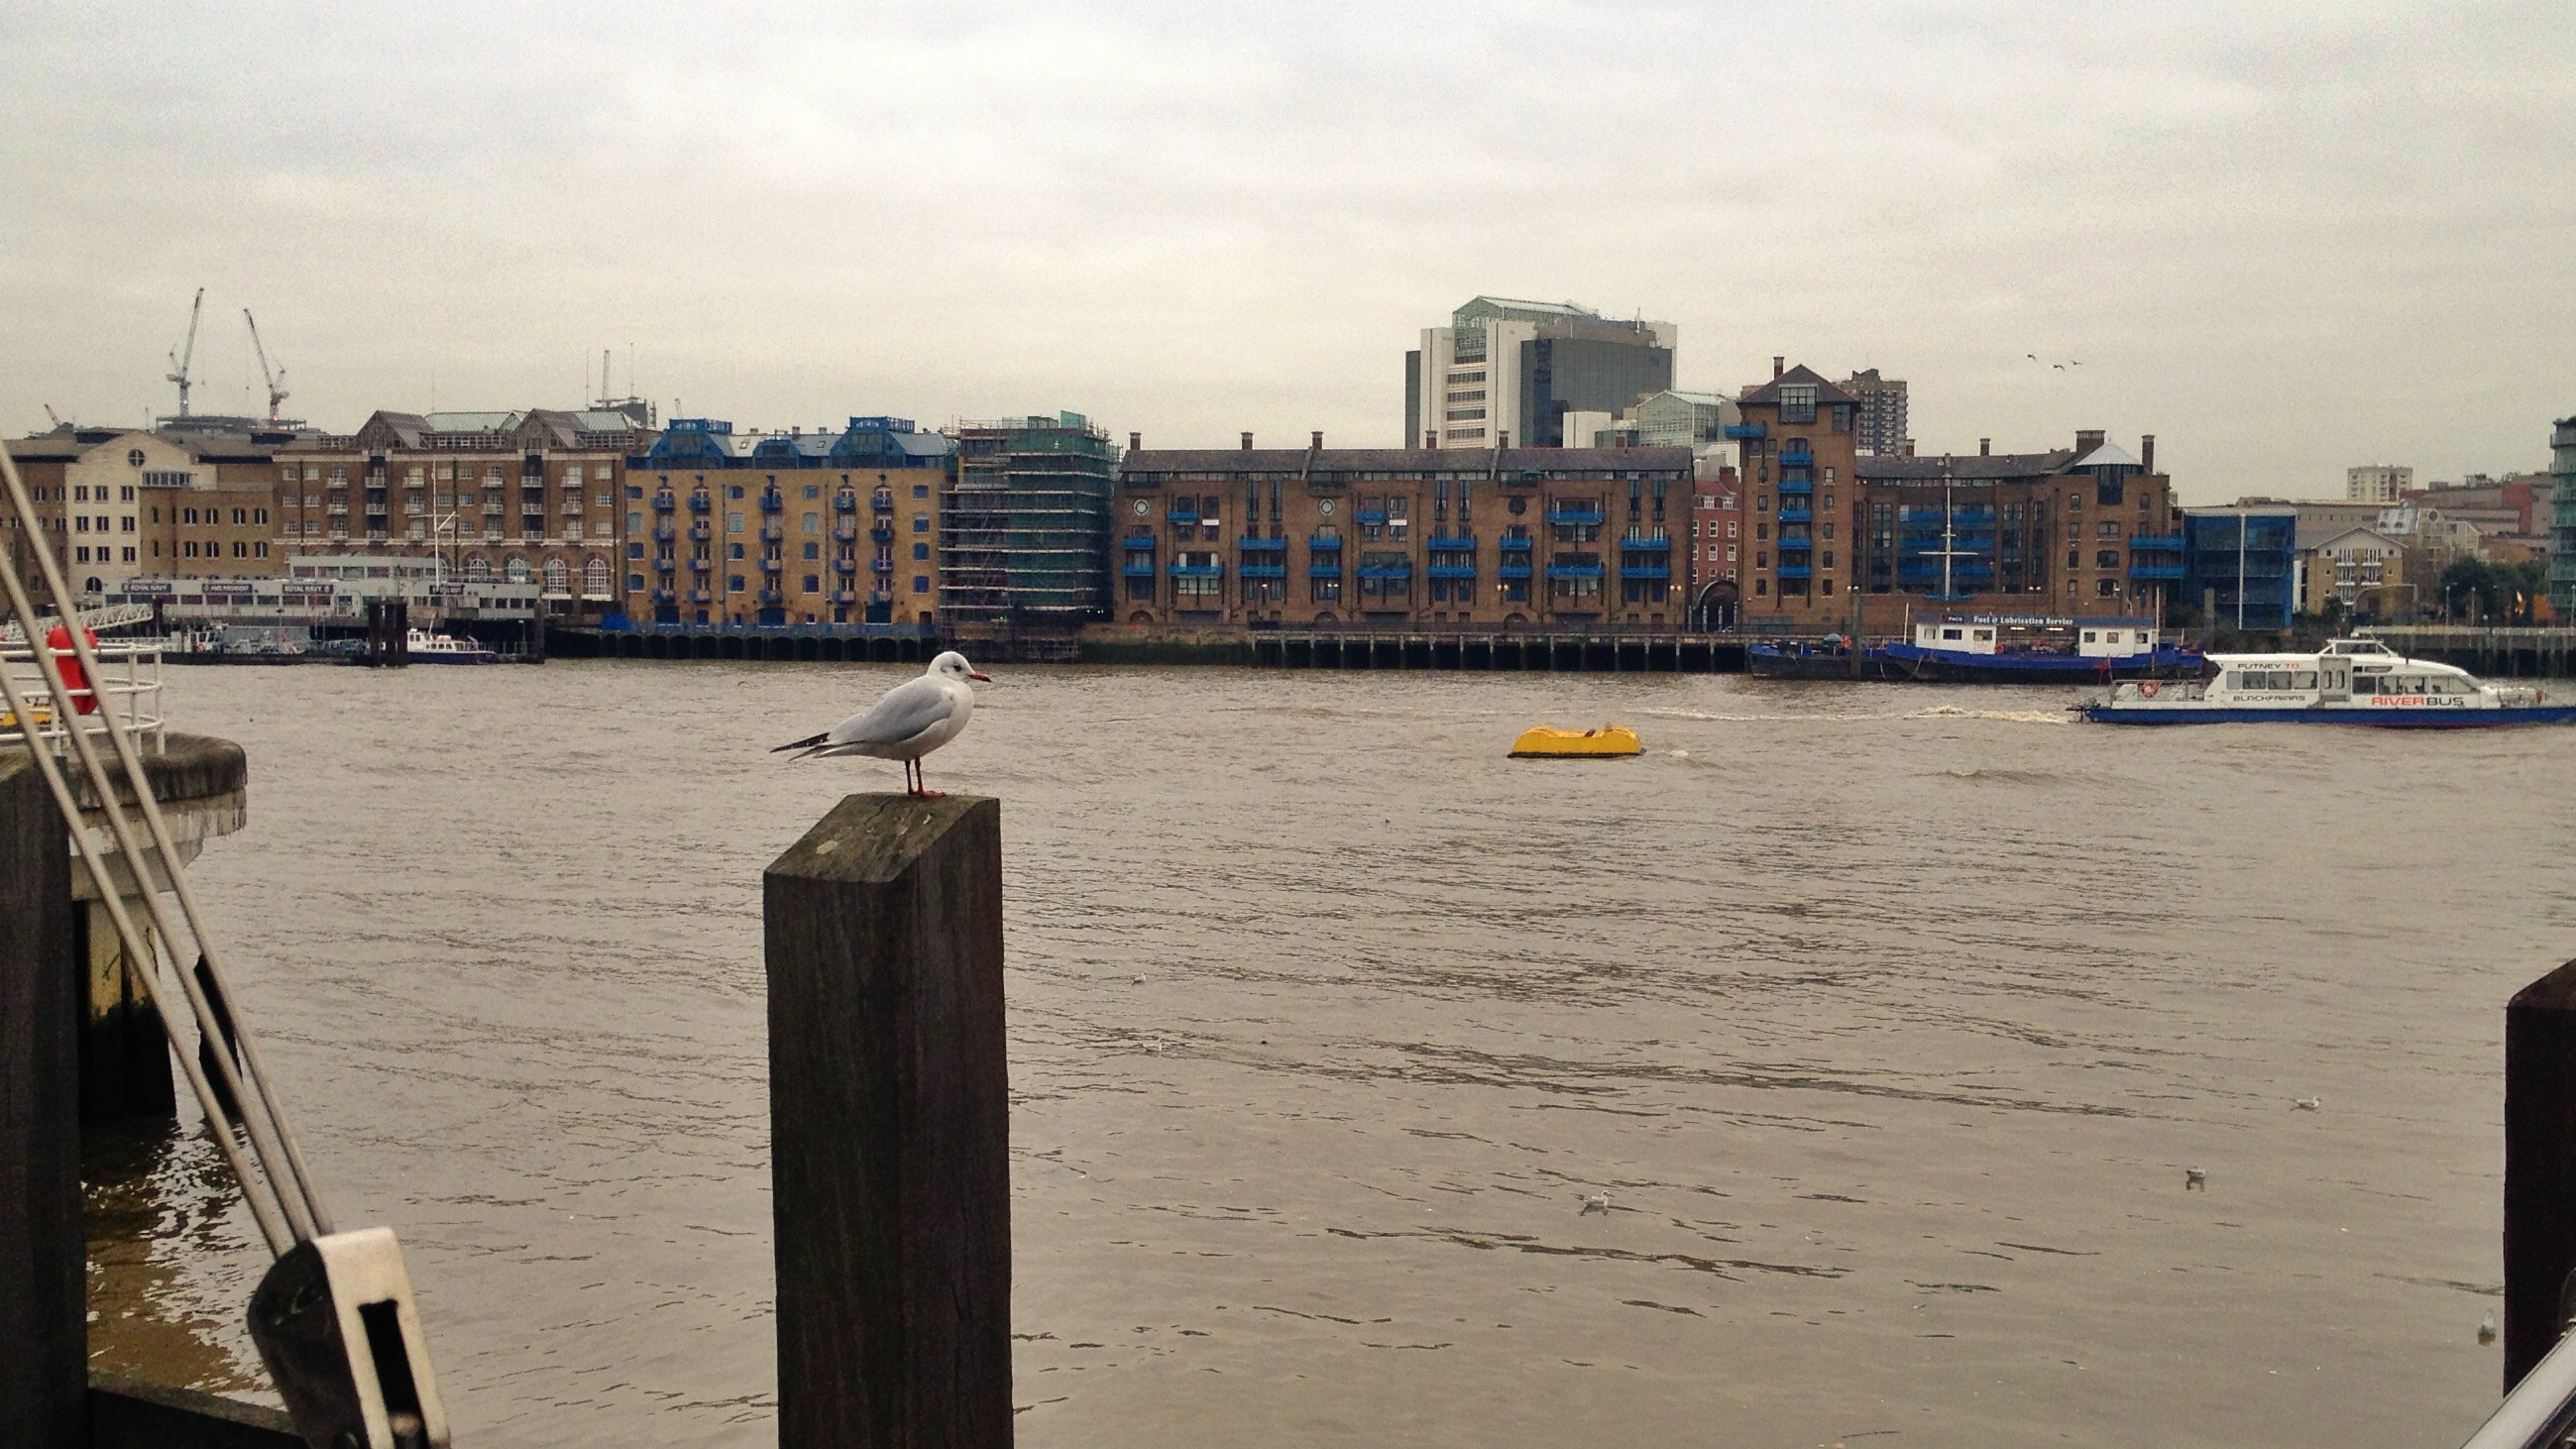 Seagull & the Thames